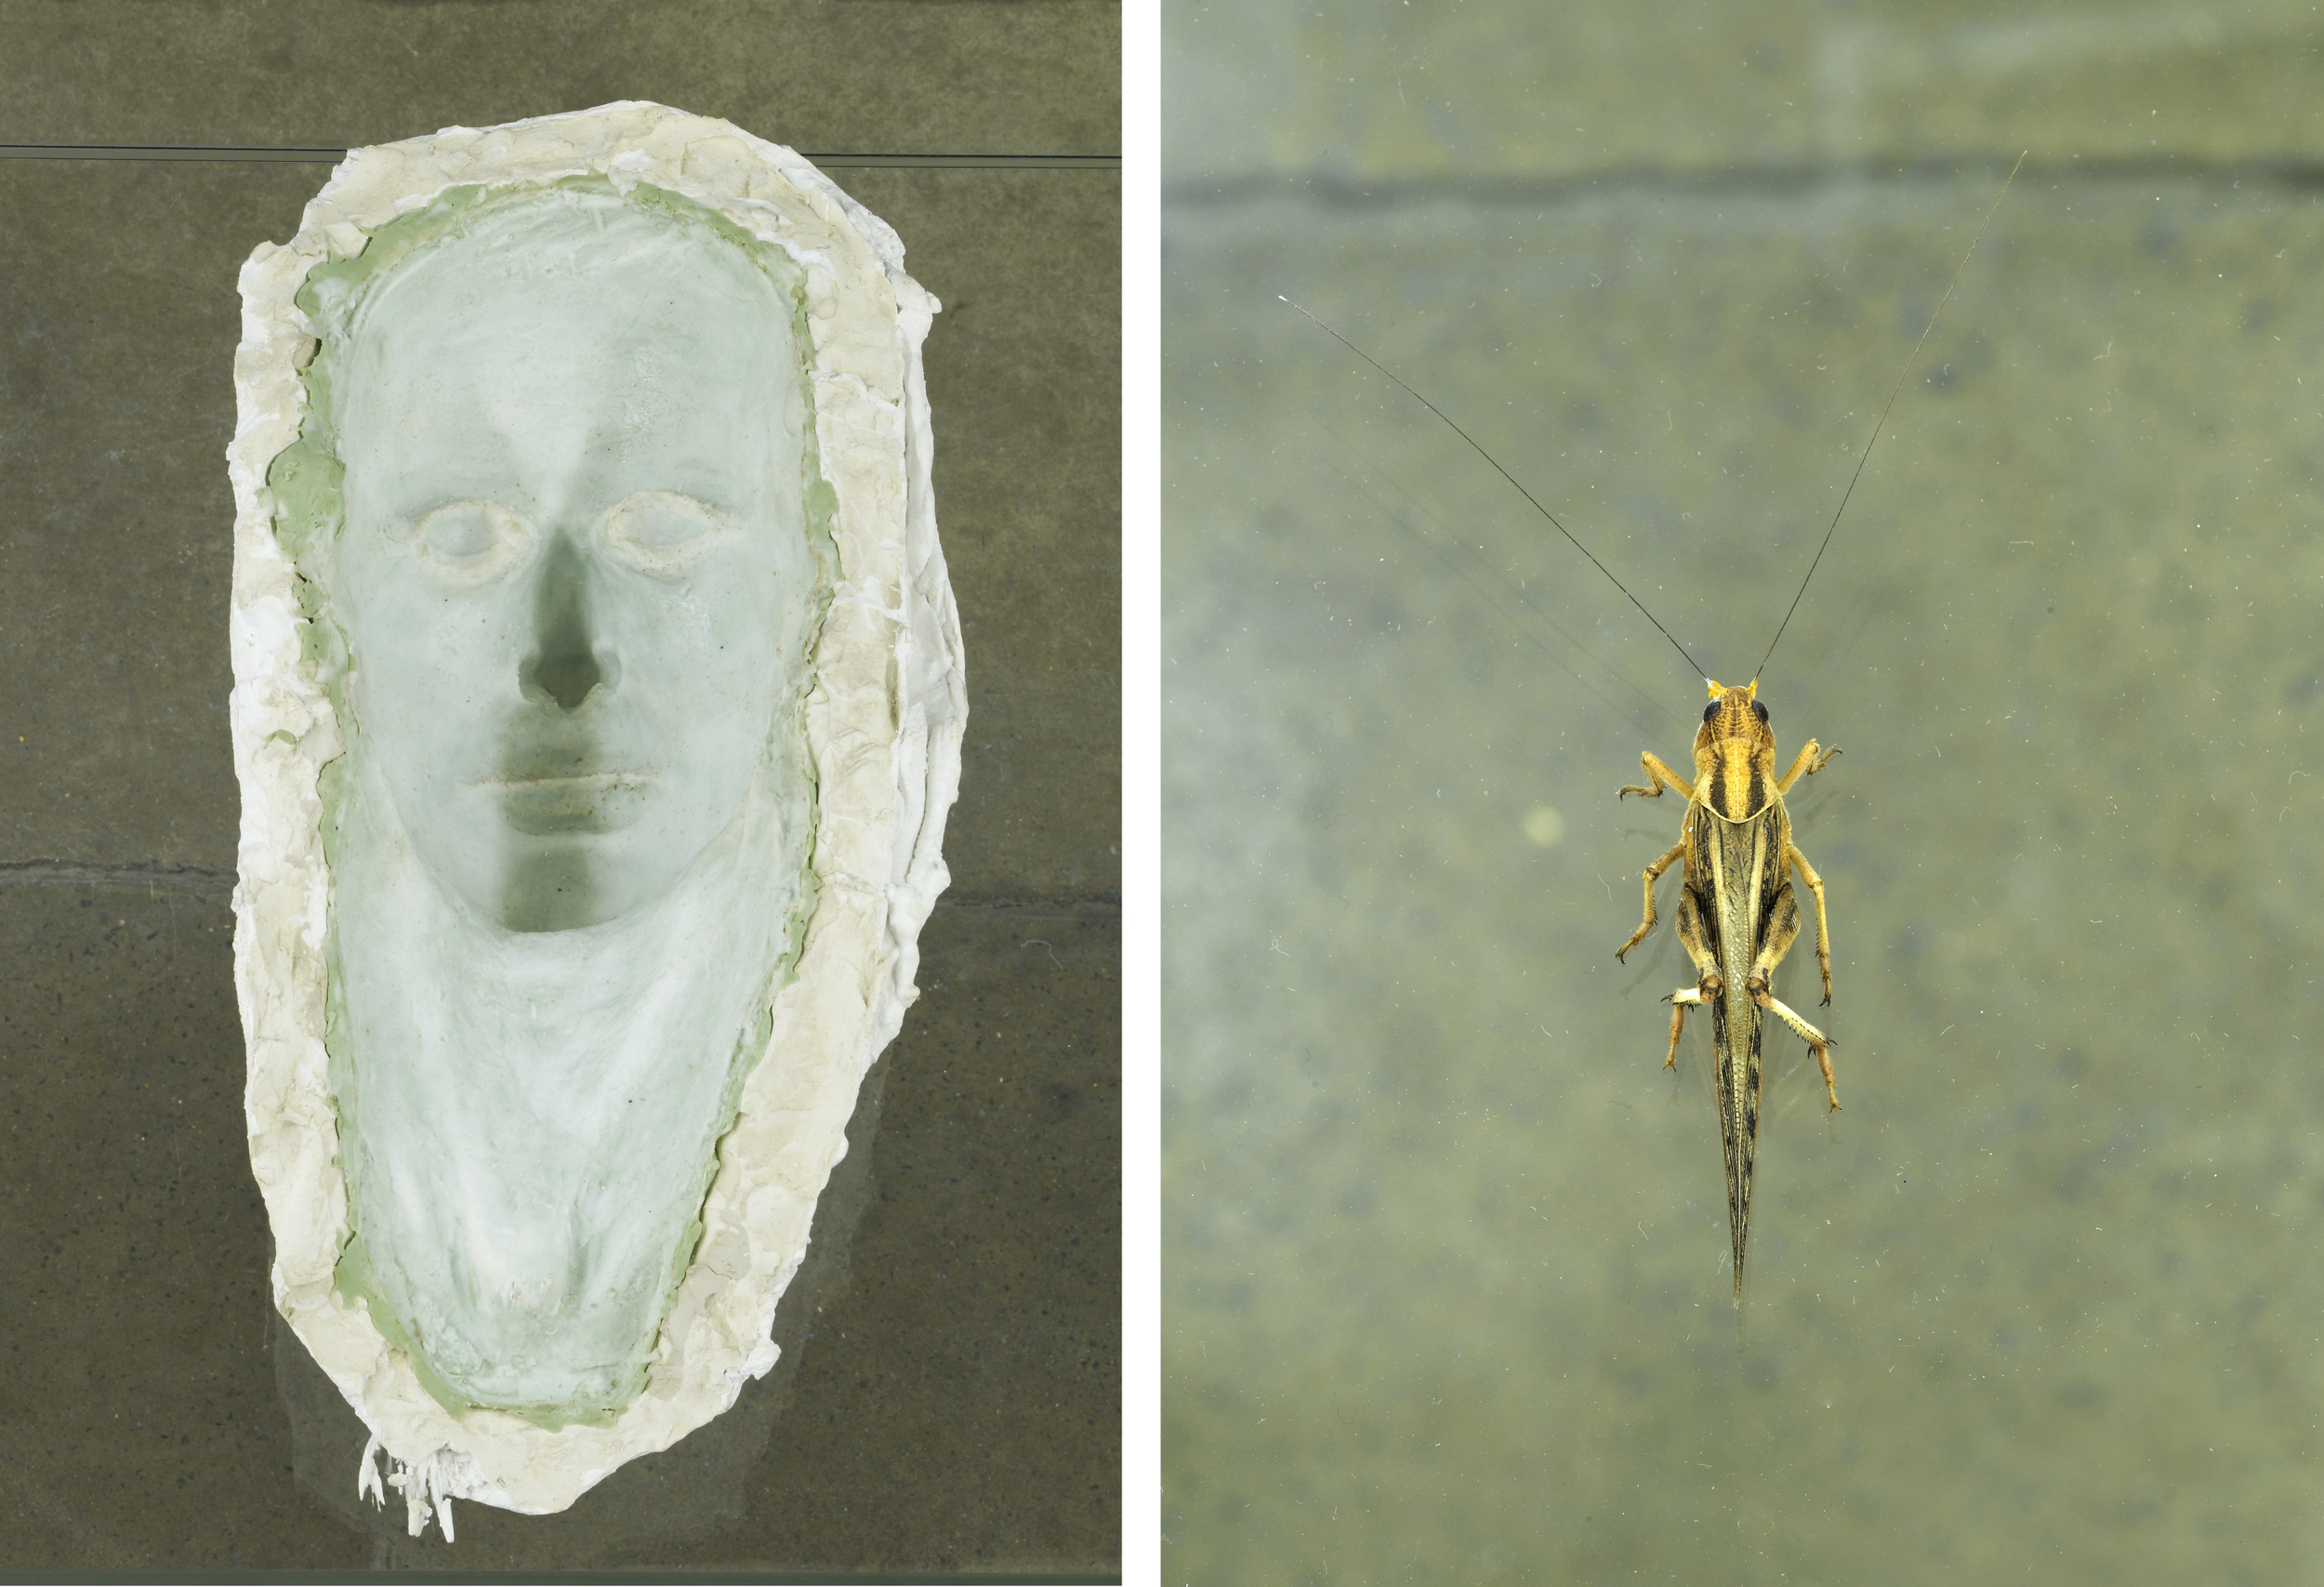 Untitled Vitrine   2012   Plastic anatomical model, silicone mould and plaster cast of a death mask, grasshopper with human hair antennae, glass vitrine   92 x 57.5 x 170 cm / 36.2 x 22.6 x 67 in